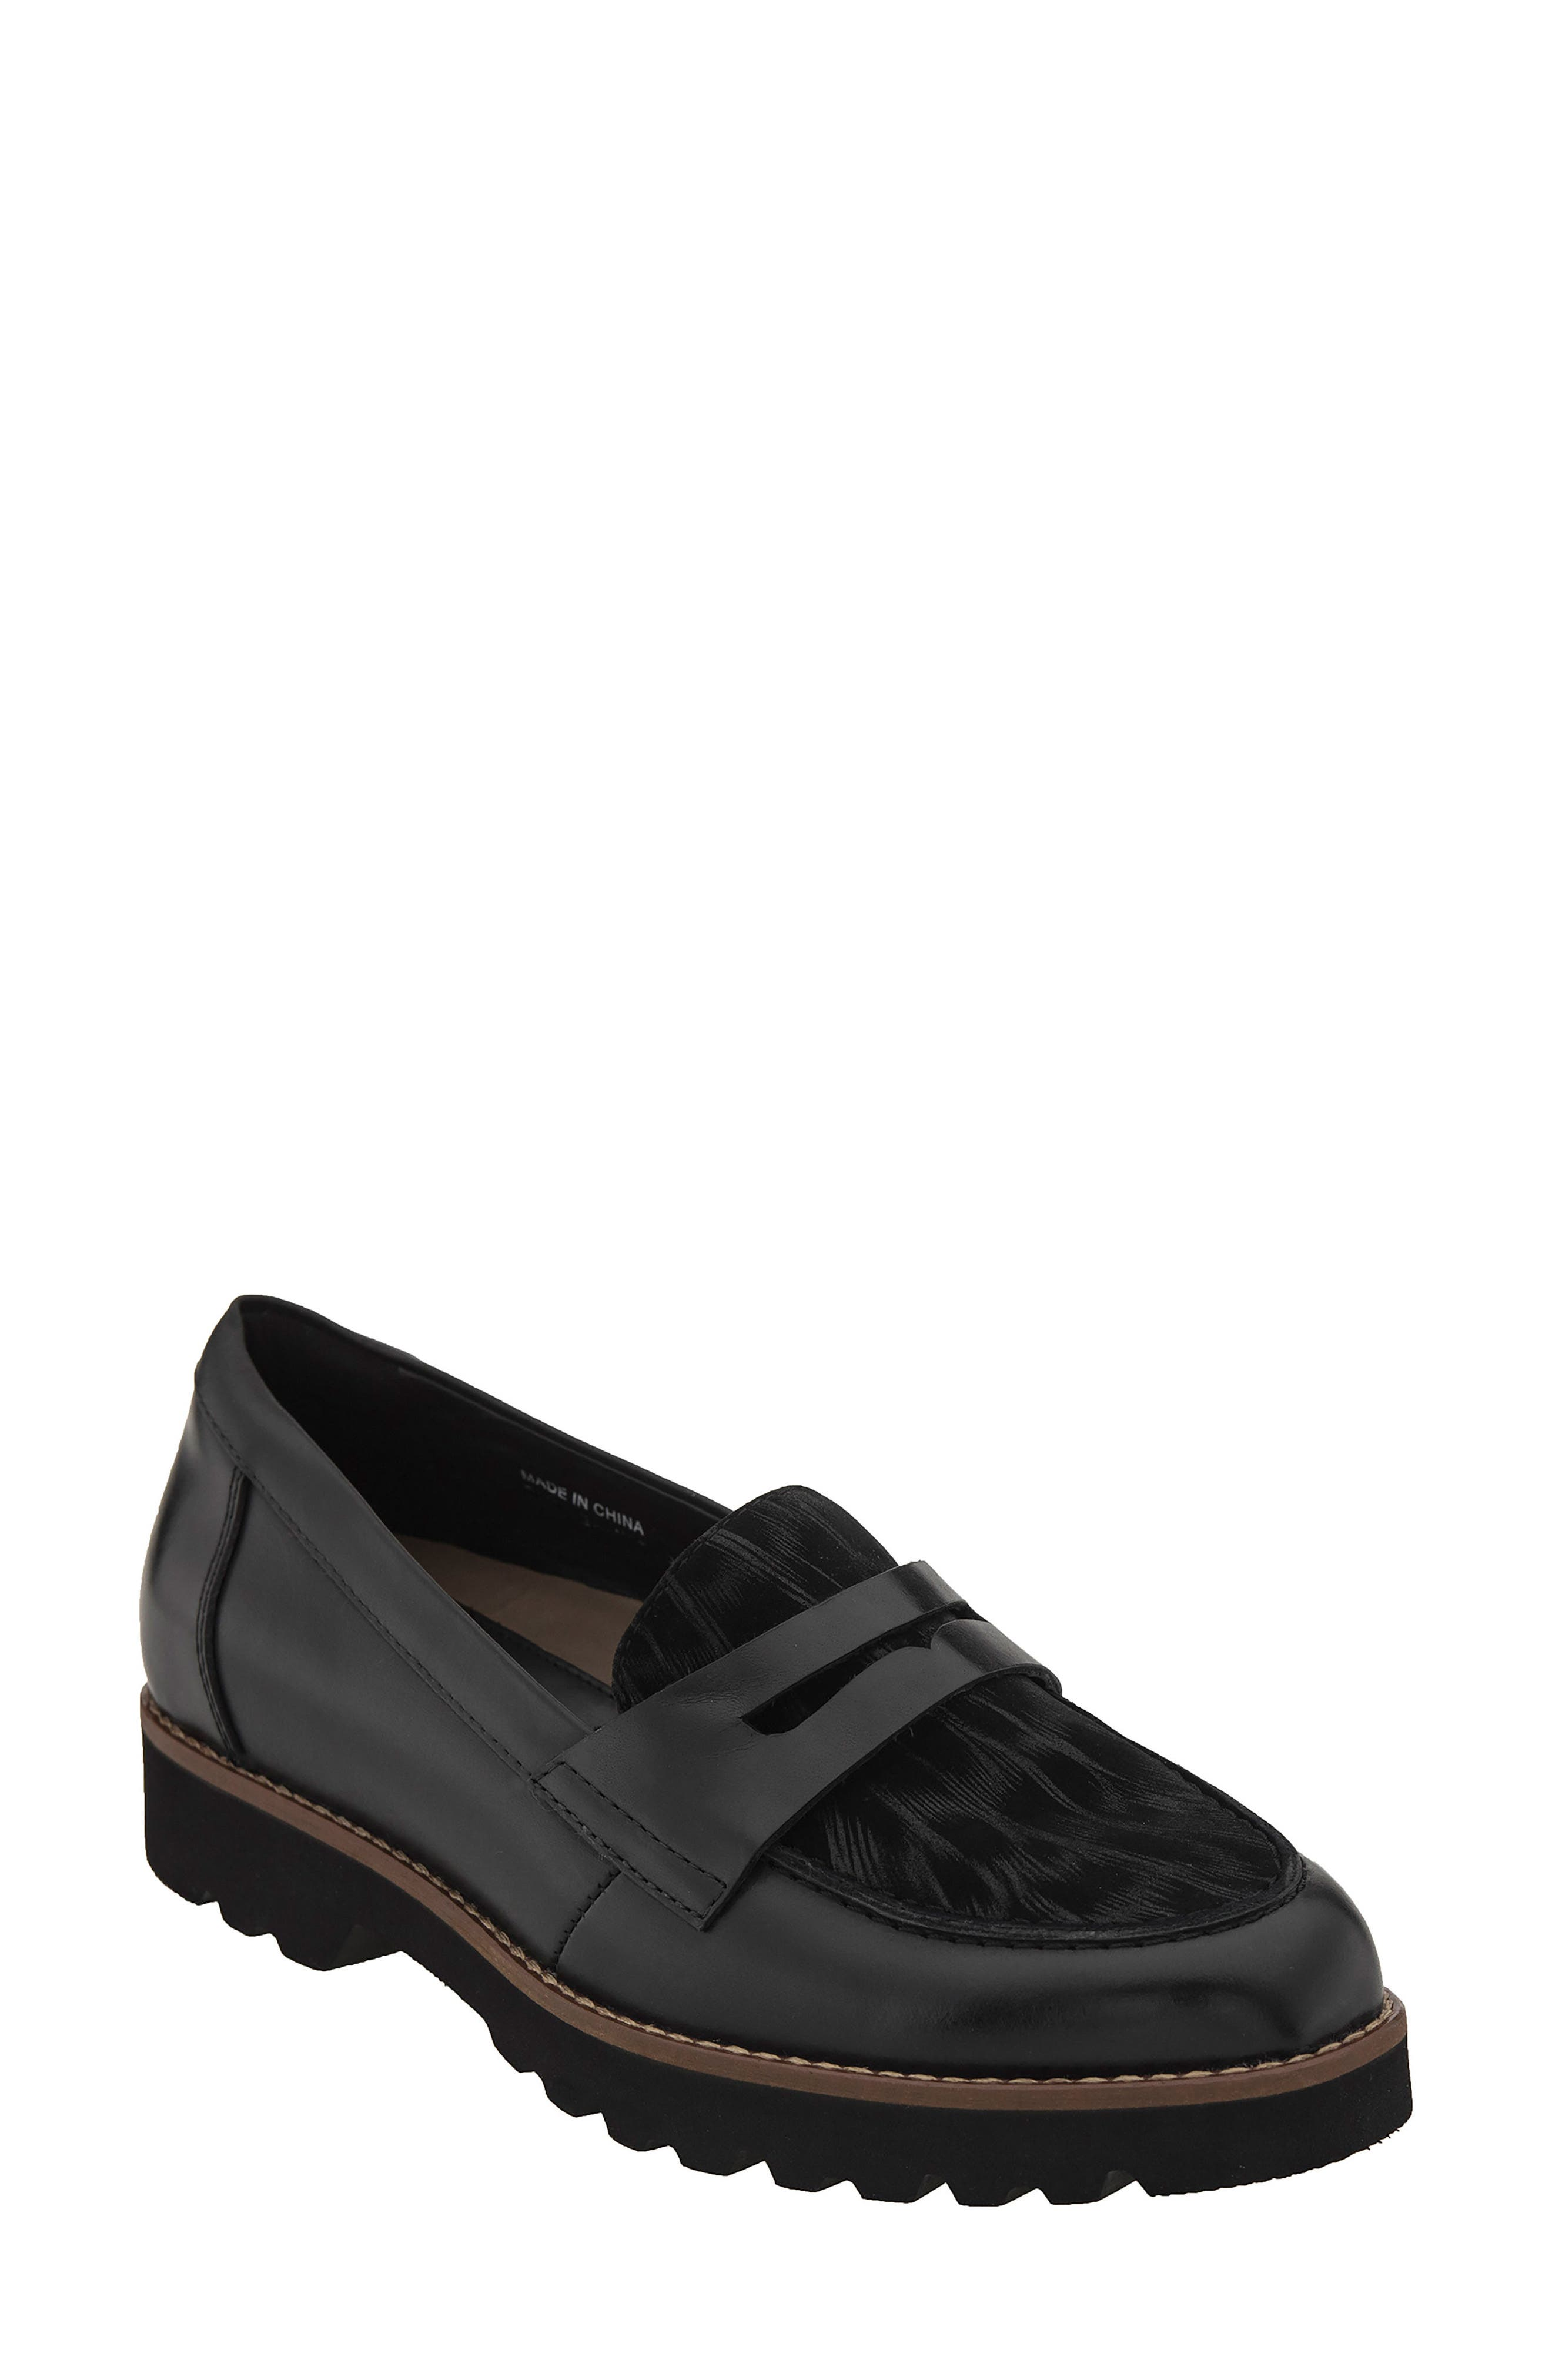 Earthies 'Braga' Loafer (Women)